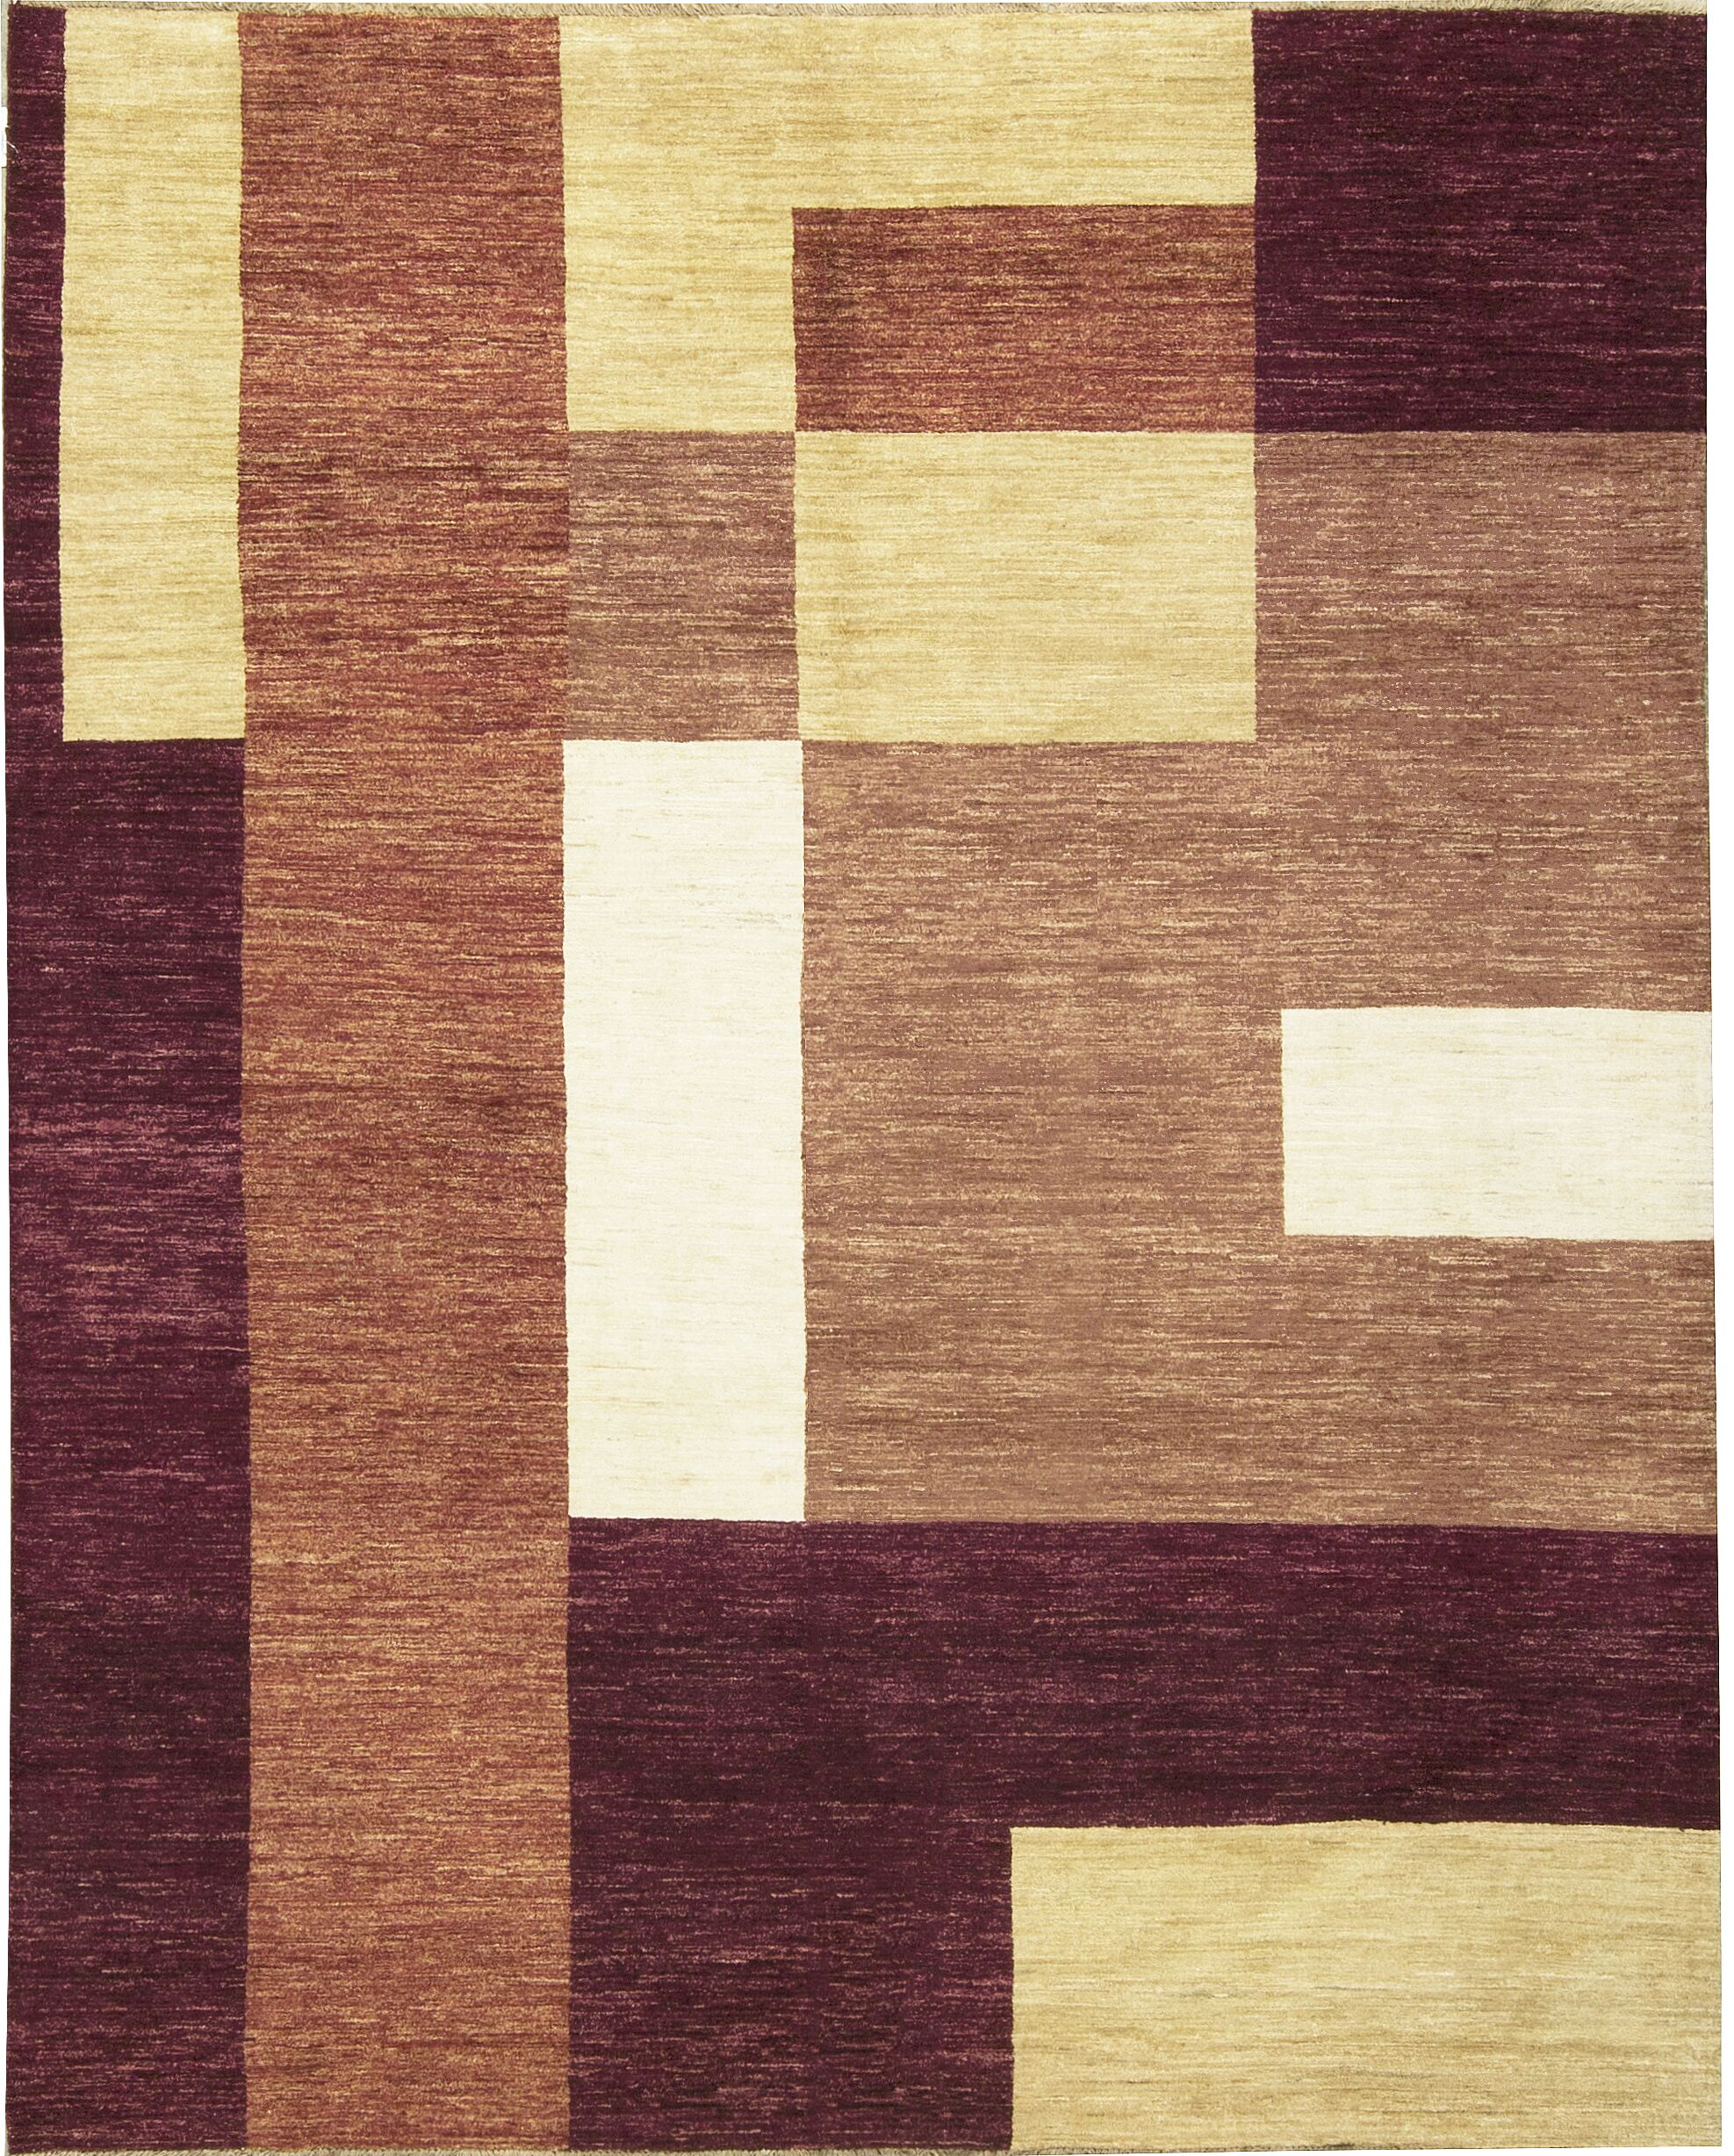 One-of-a-Kind Gabbeh Hand-Knotted Wool Purple Wine Area Rug